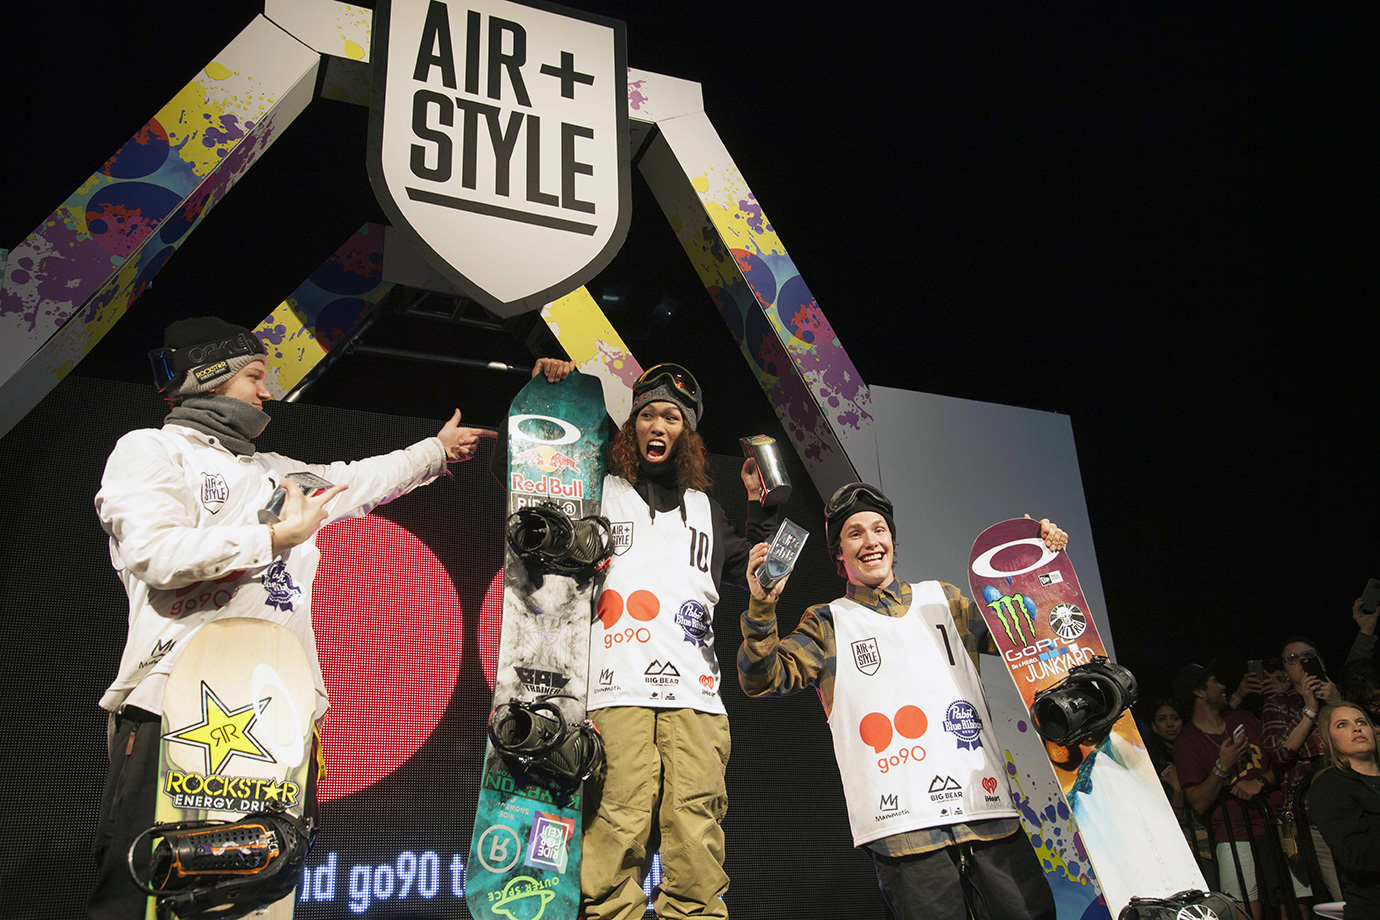 The 2016 Air+Style L.A. podium: winner Yuki Kadono (center), 2nd place Kyle Mack (left) and 3rd place Sven Thorgren.